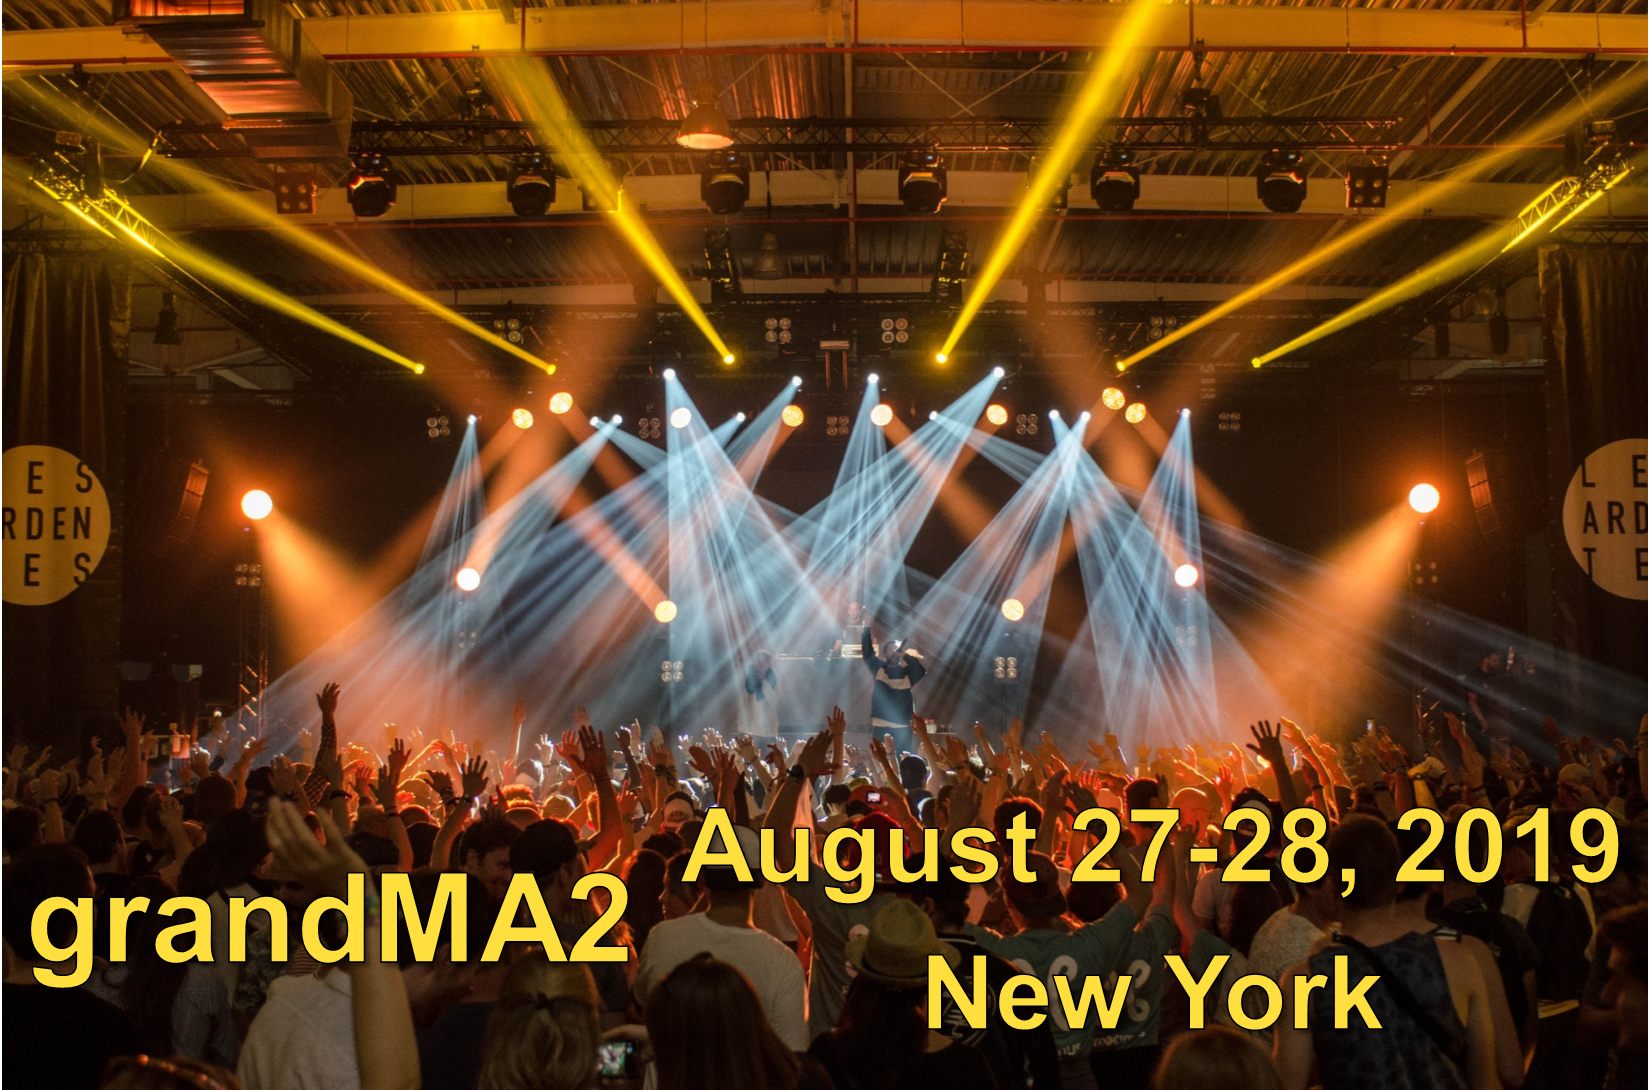 grandMA2 Class - August 27-28, 2019 - New York - SOLD OUT